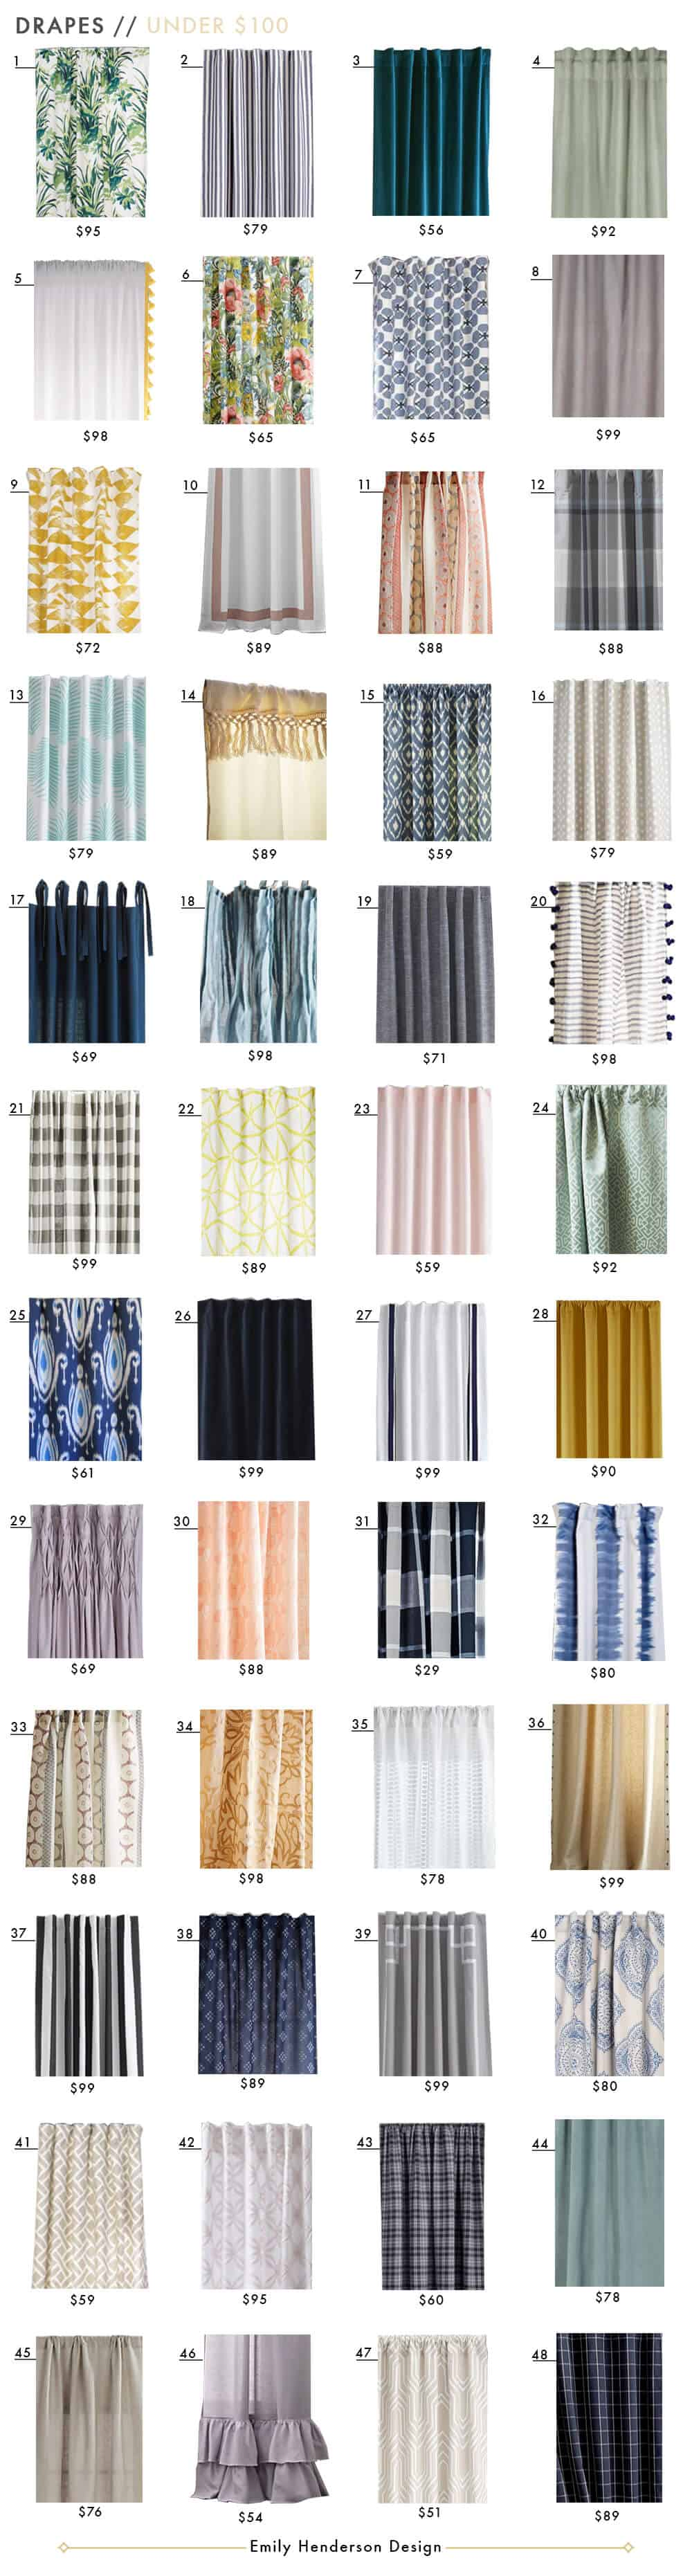 budget friendly ready made curtain